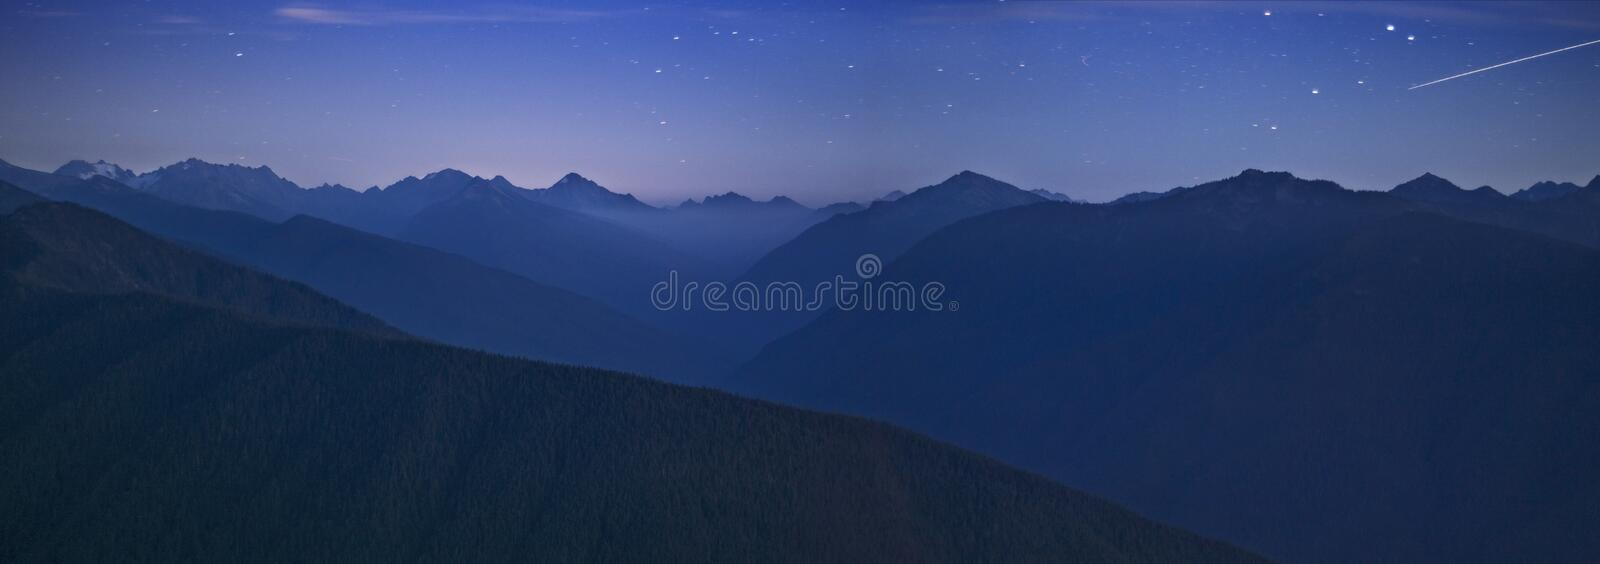 Download Olympic National Park Mountains Night Time Sky And Meteorite Stock Photo - Image: 58406810